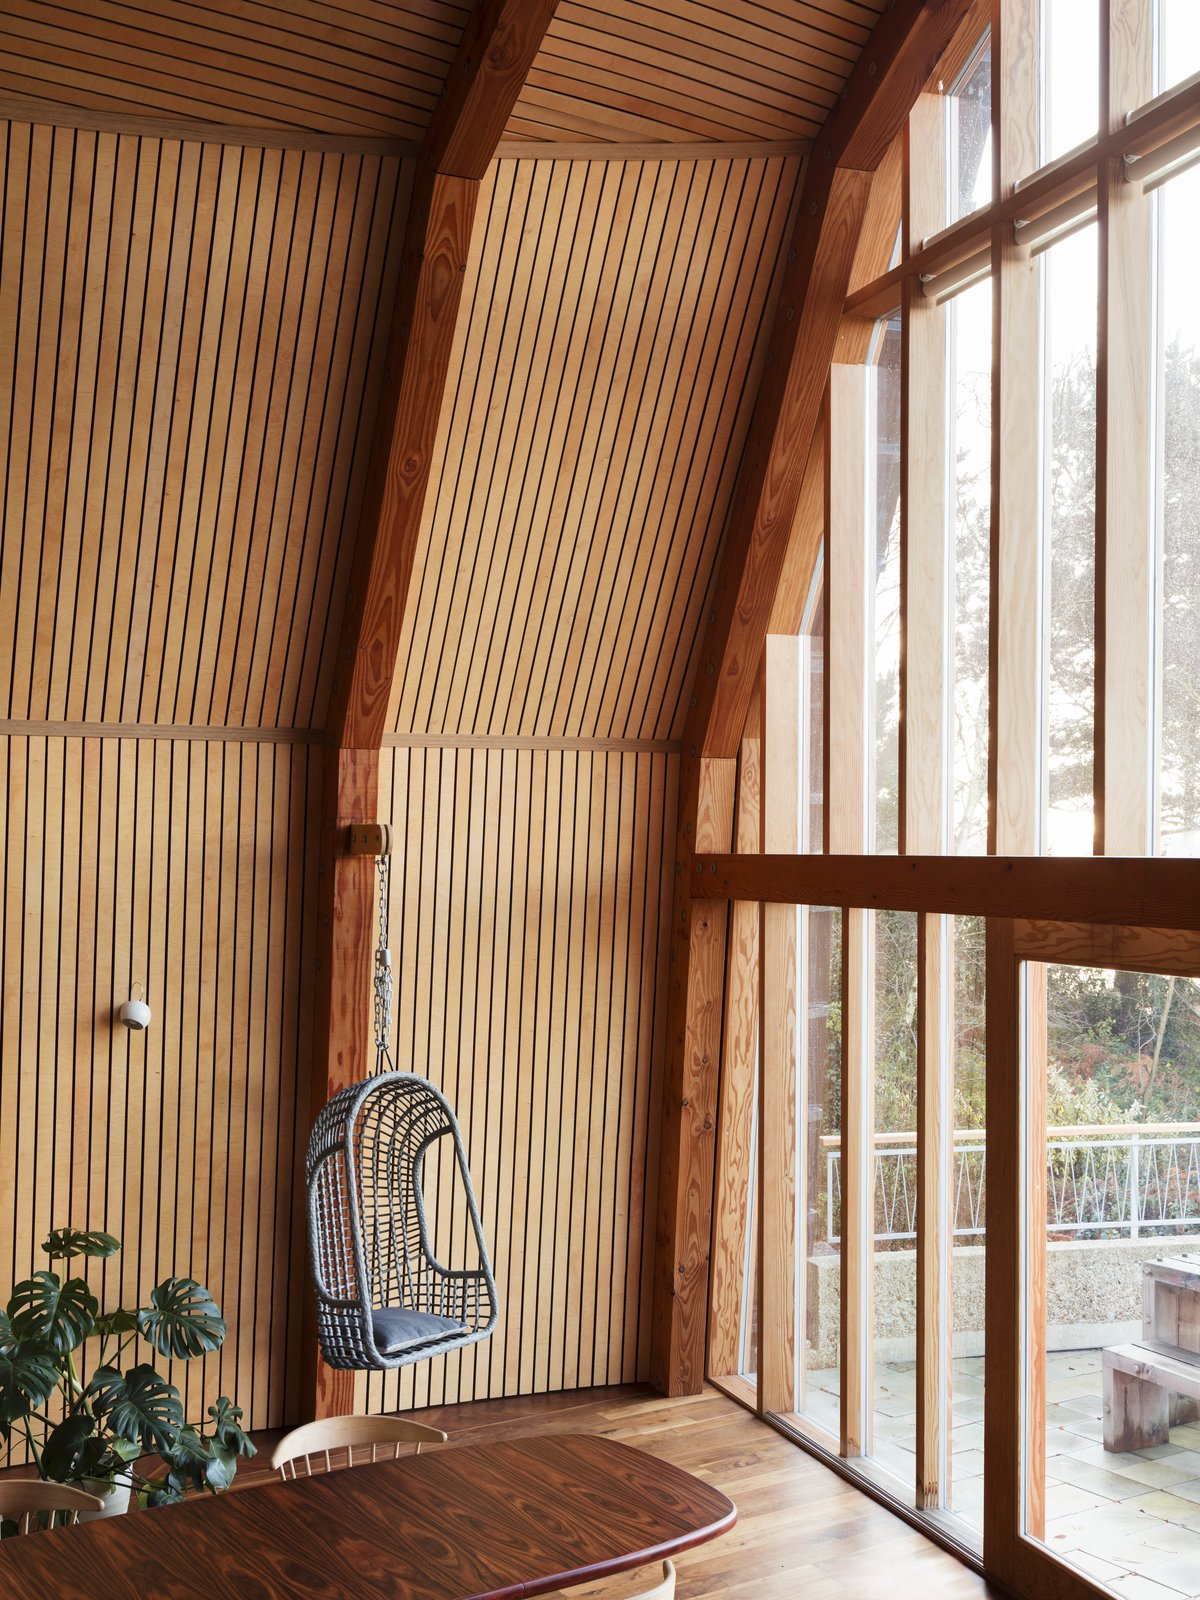 Windows and Picture Window Type  The Boathouse from Resembling the Inverted Hull of a Ship, an English Guest House Pays Homage to the Harbor